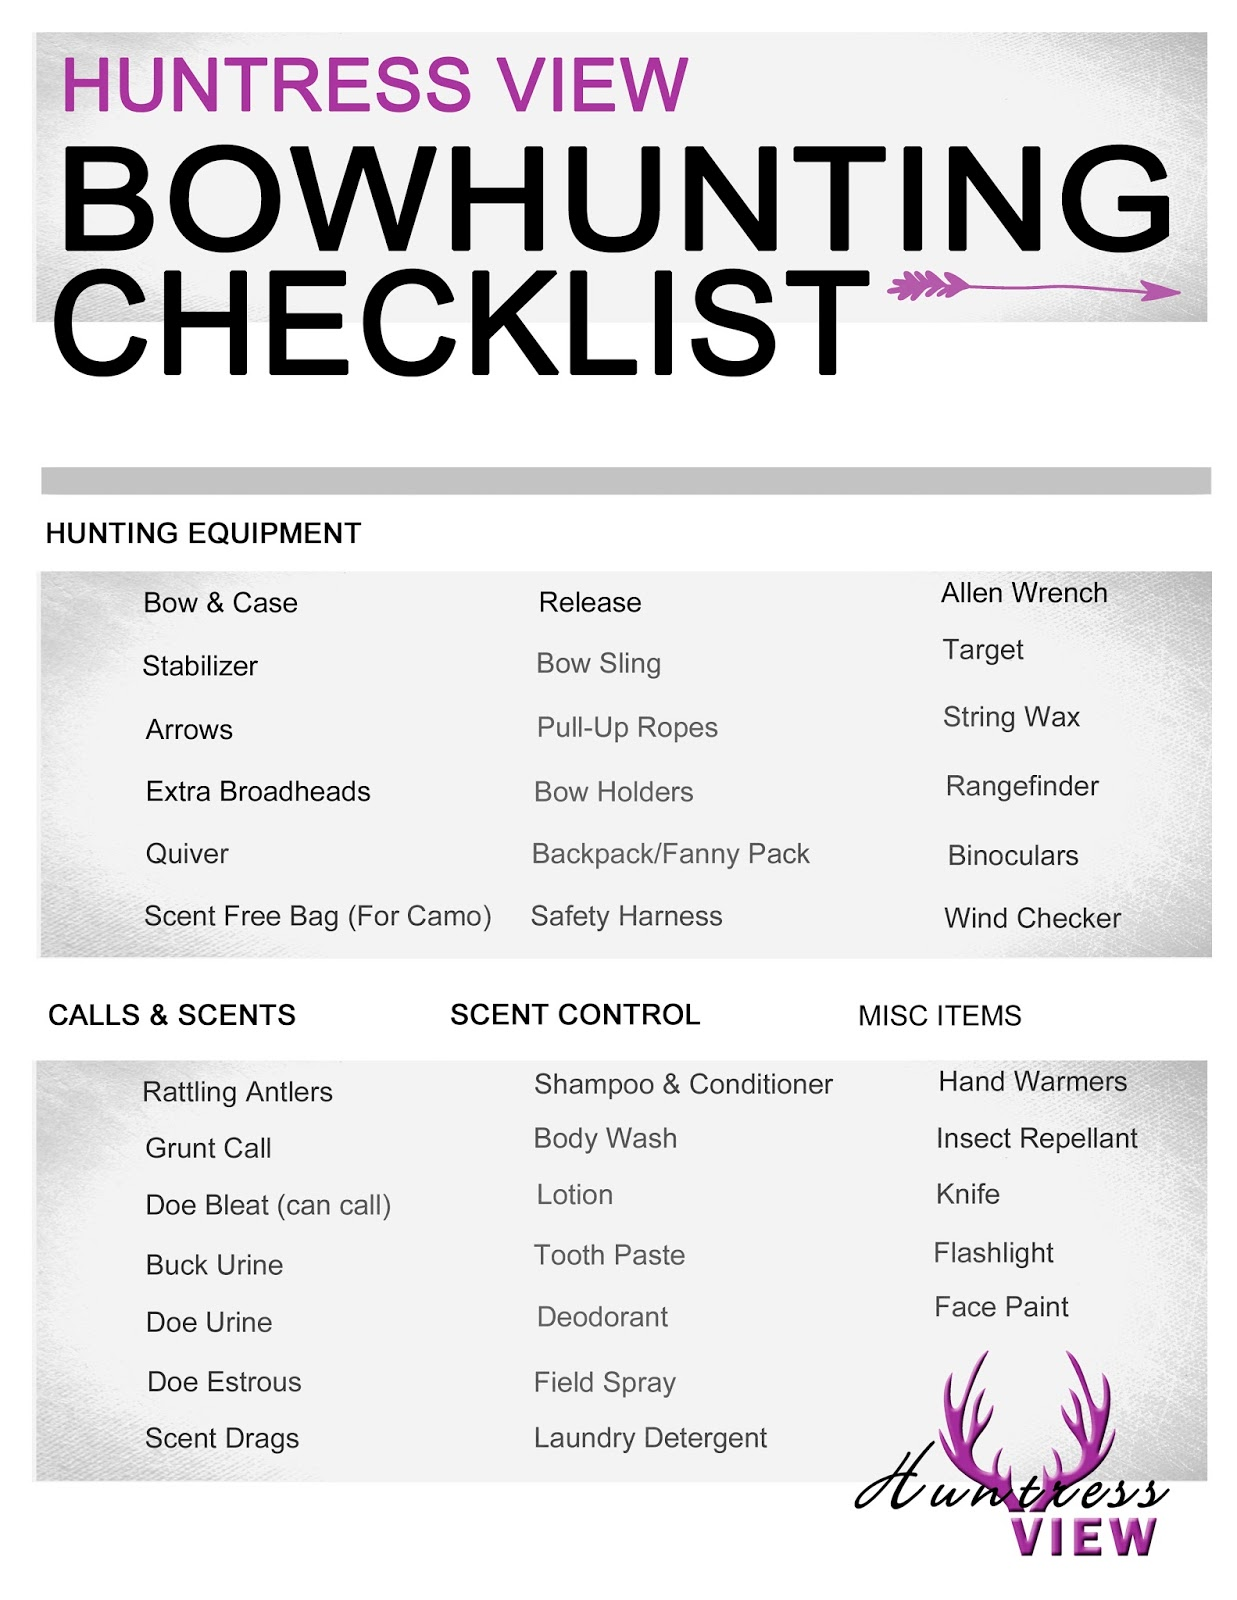 Huntress View Bow Hunting Gear Checklist For Women Hunters